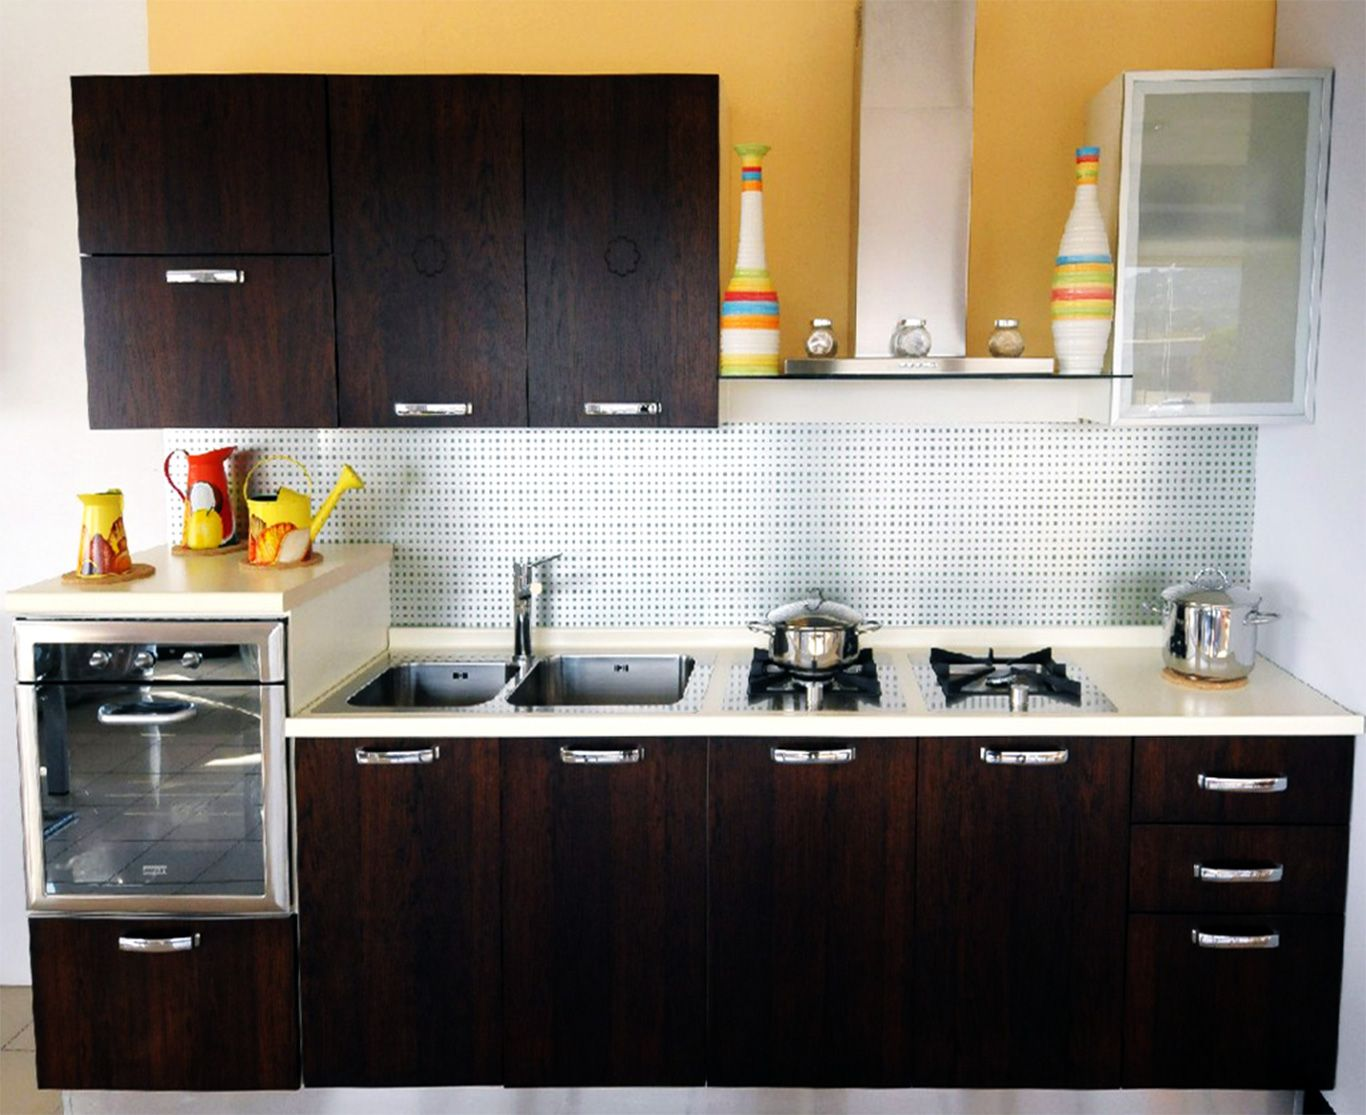 Pune Kitchens is the Modular Kitchen Shutters Supplier company in ...